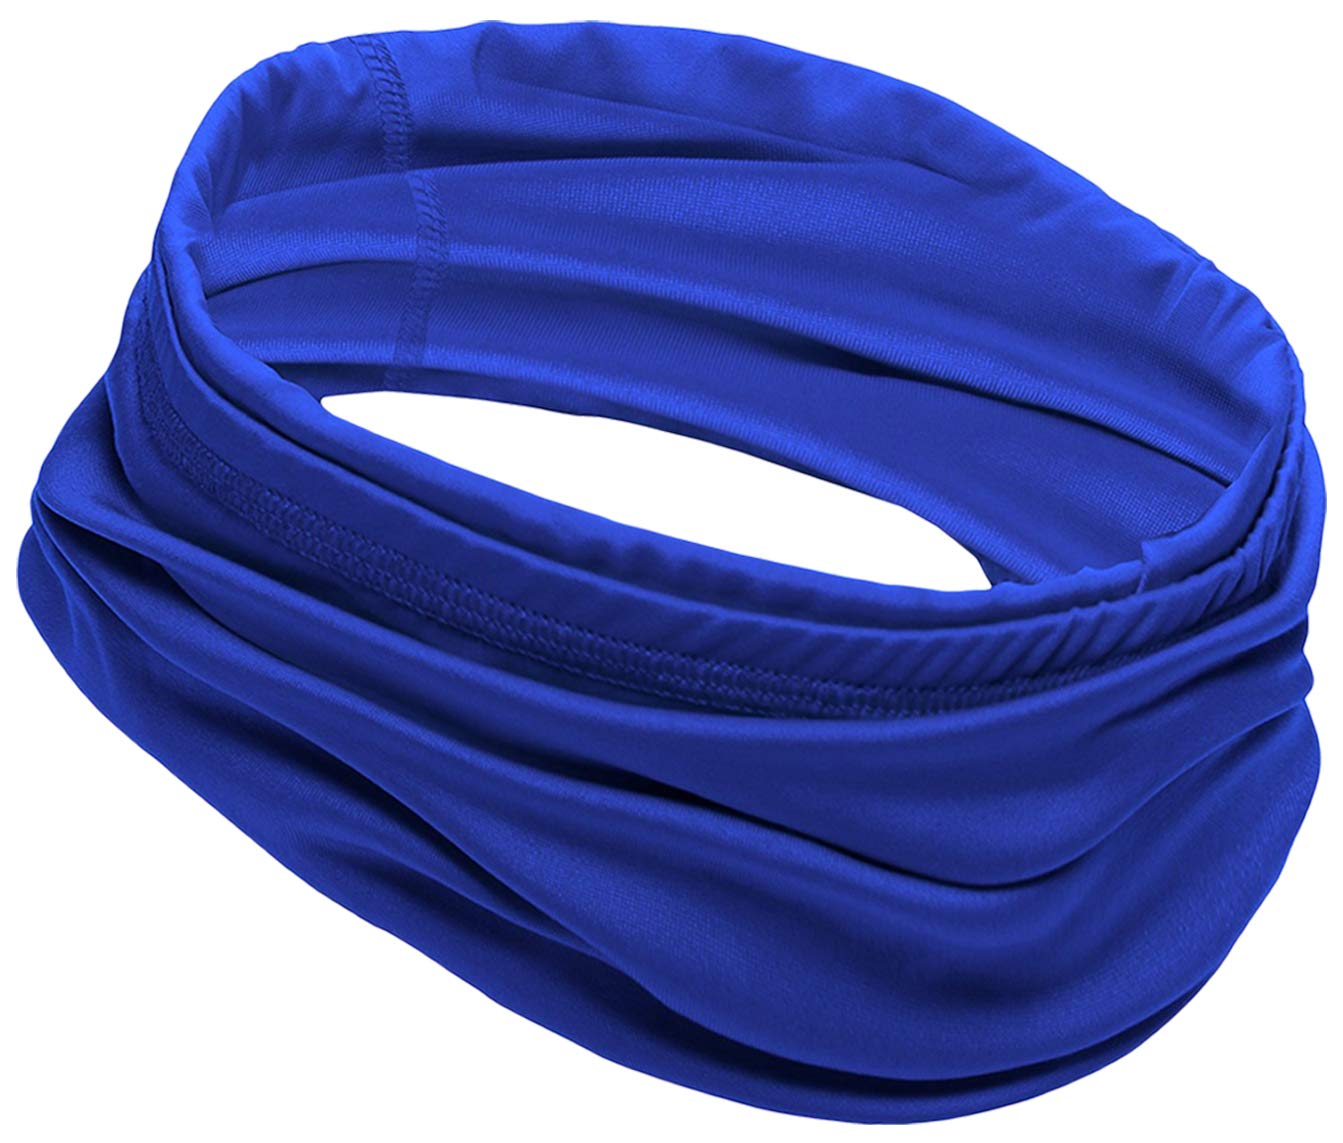 12-in-1 Cooling Neck Wrap, Gaiter, Bandana, Headband or Scarf for Men & Women - Versatile Cool Headwear for Summer Heat - UPF 50 Head Wrap for Sun Protection - Skin Cancer Foundation Recommended